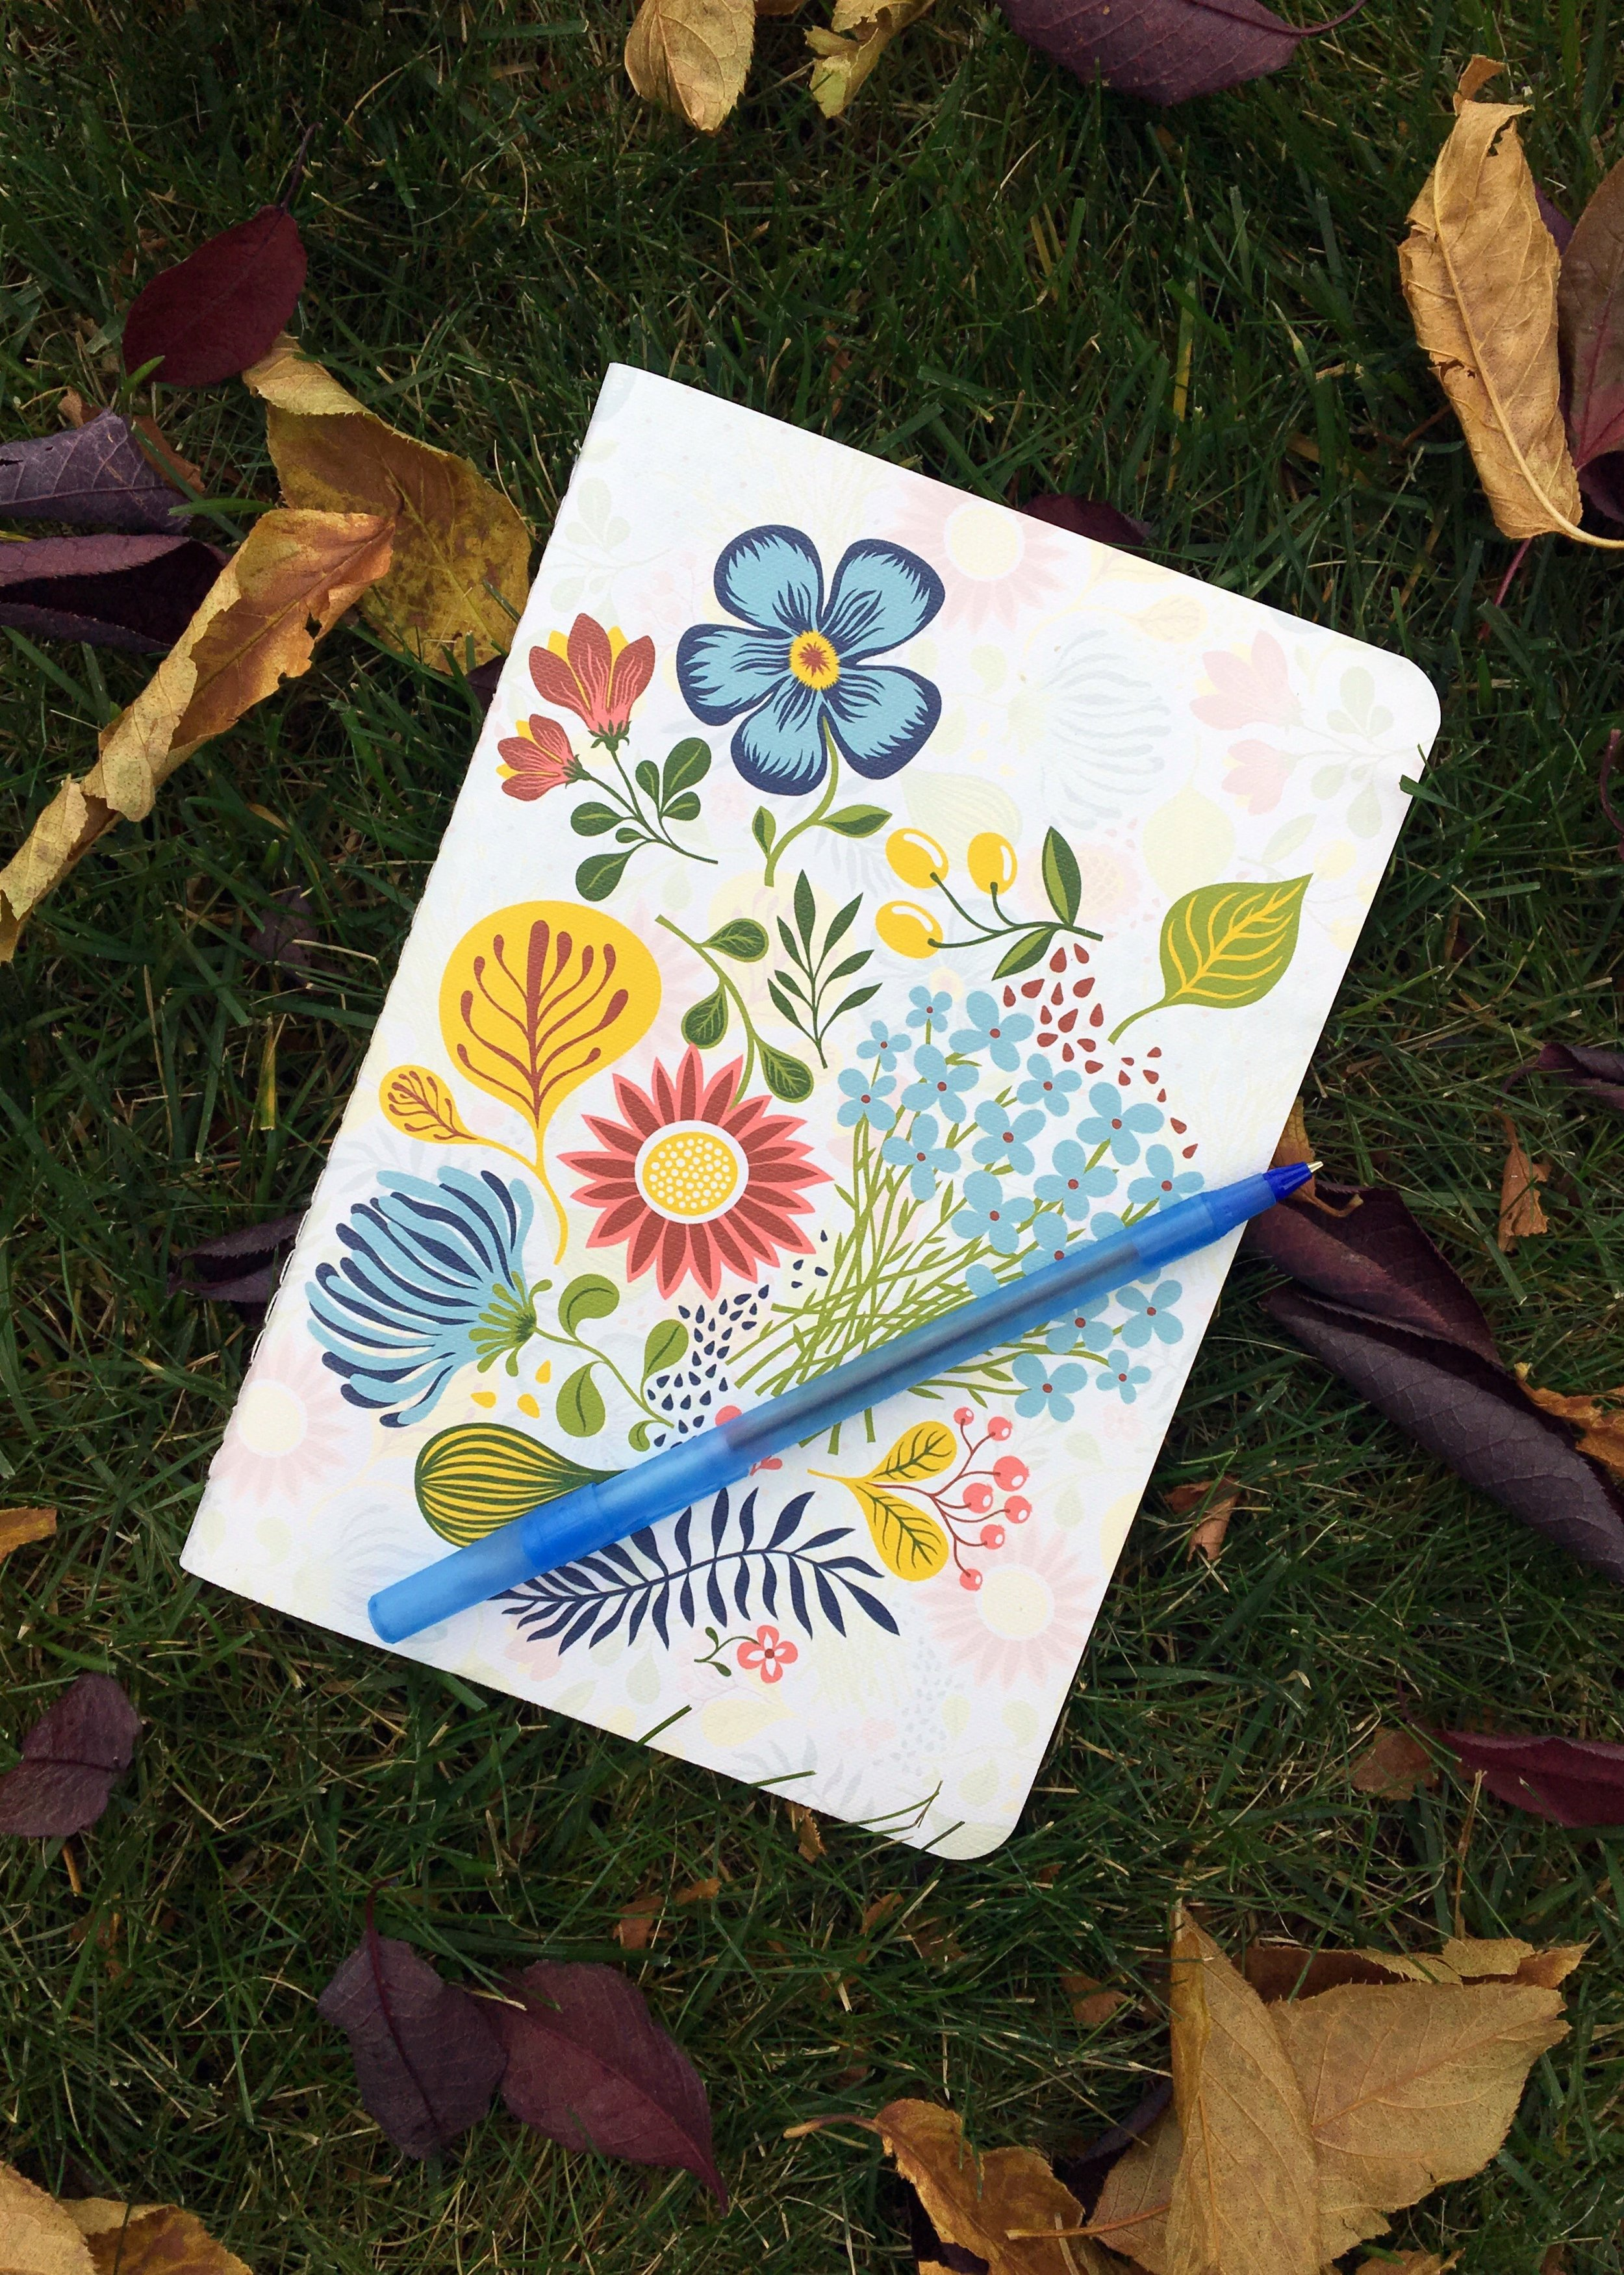 Journal in Grass & Leaves Oct 10, 2017.jpg